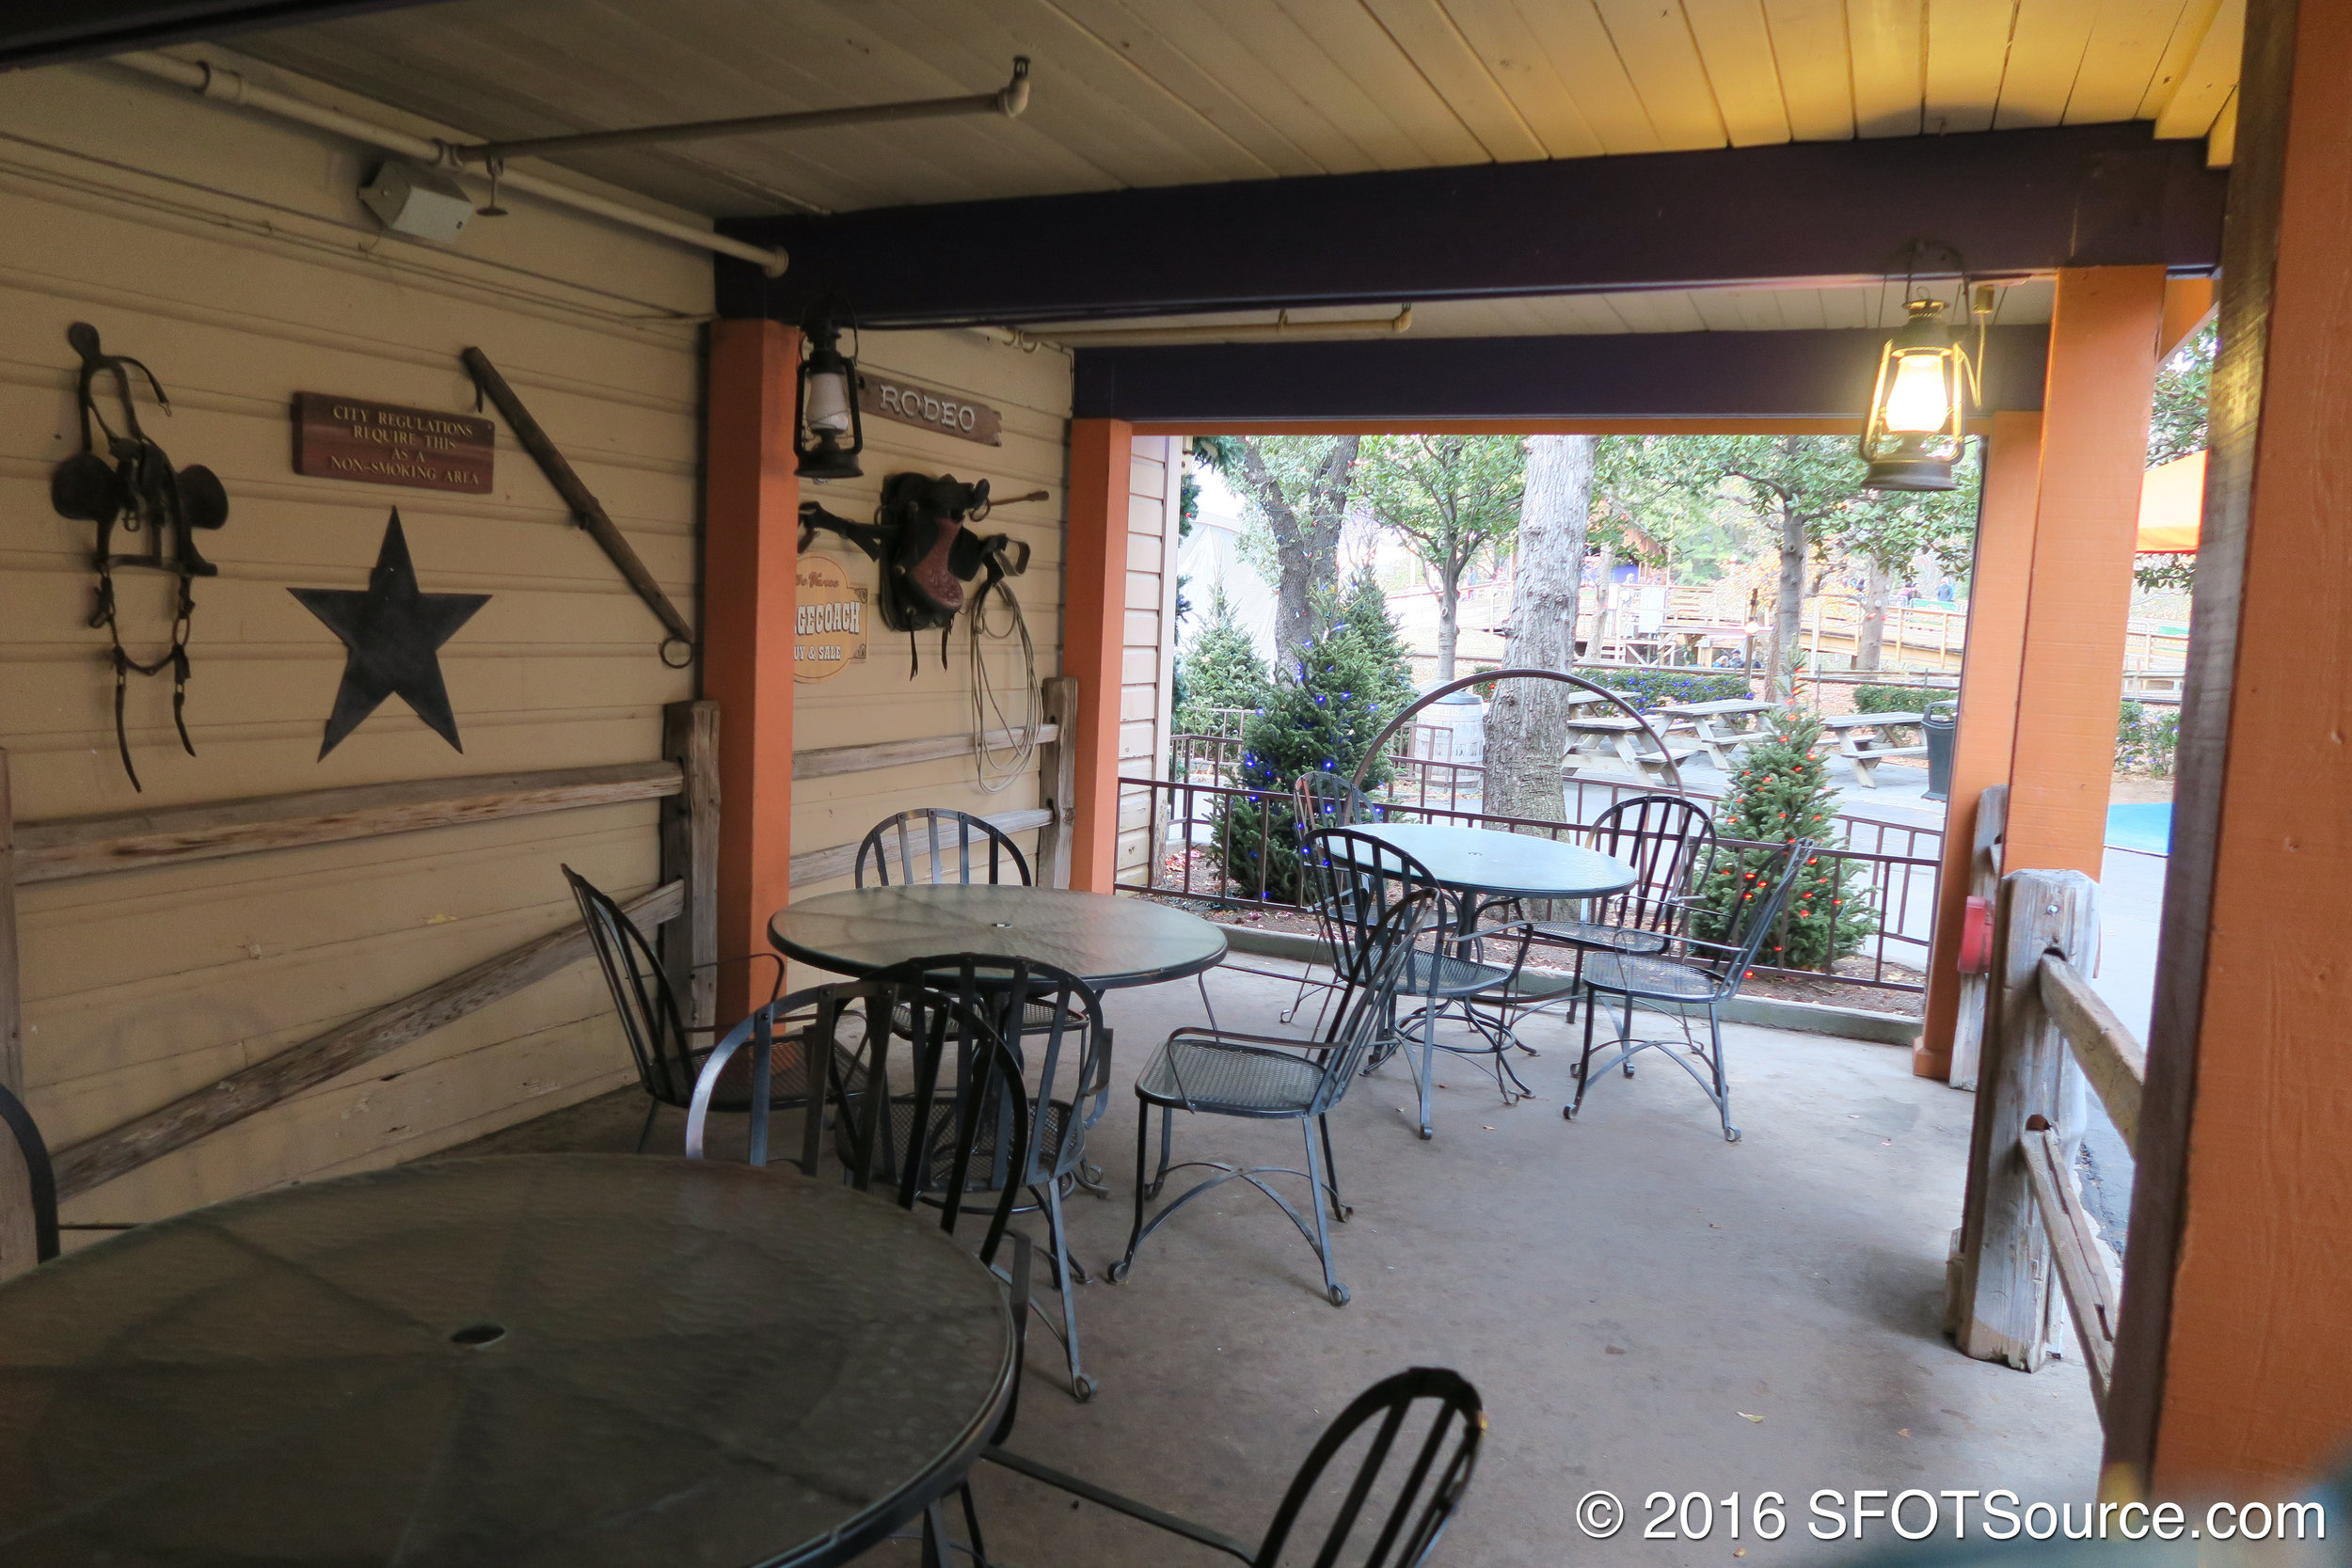 A look at the restaurant's covered outdoor seating area.